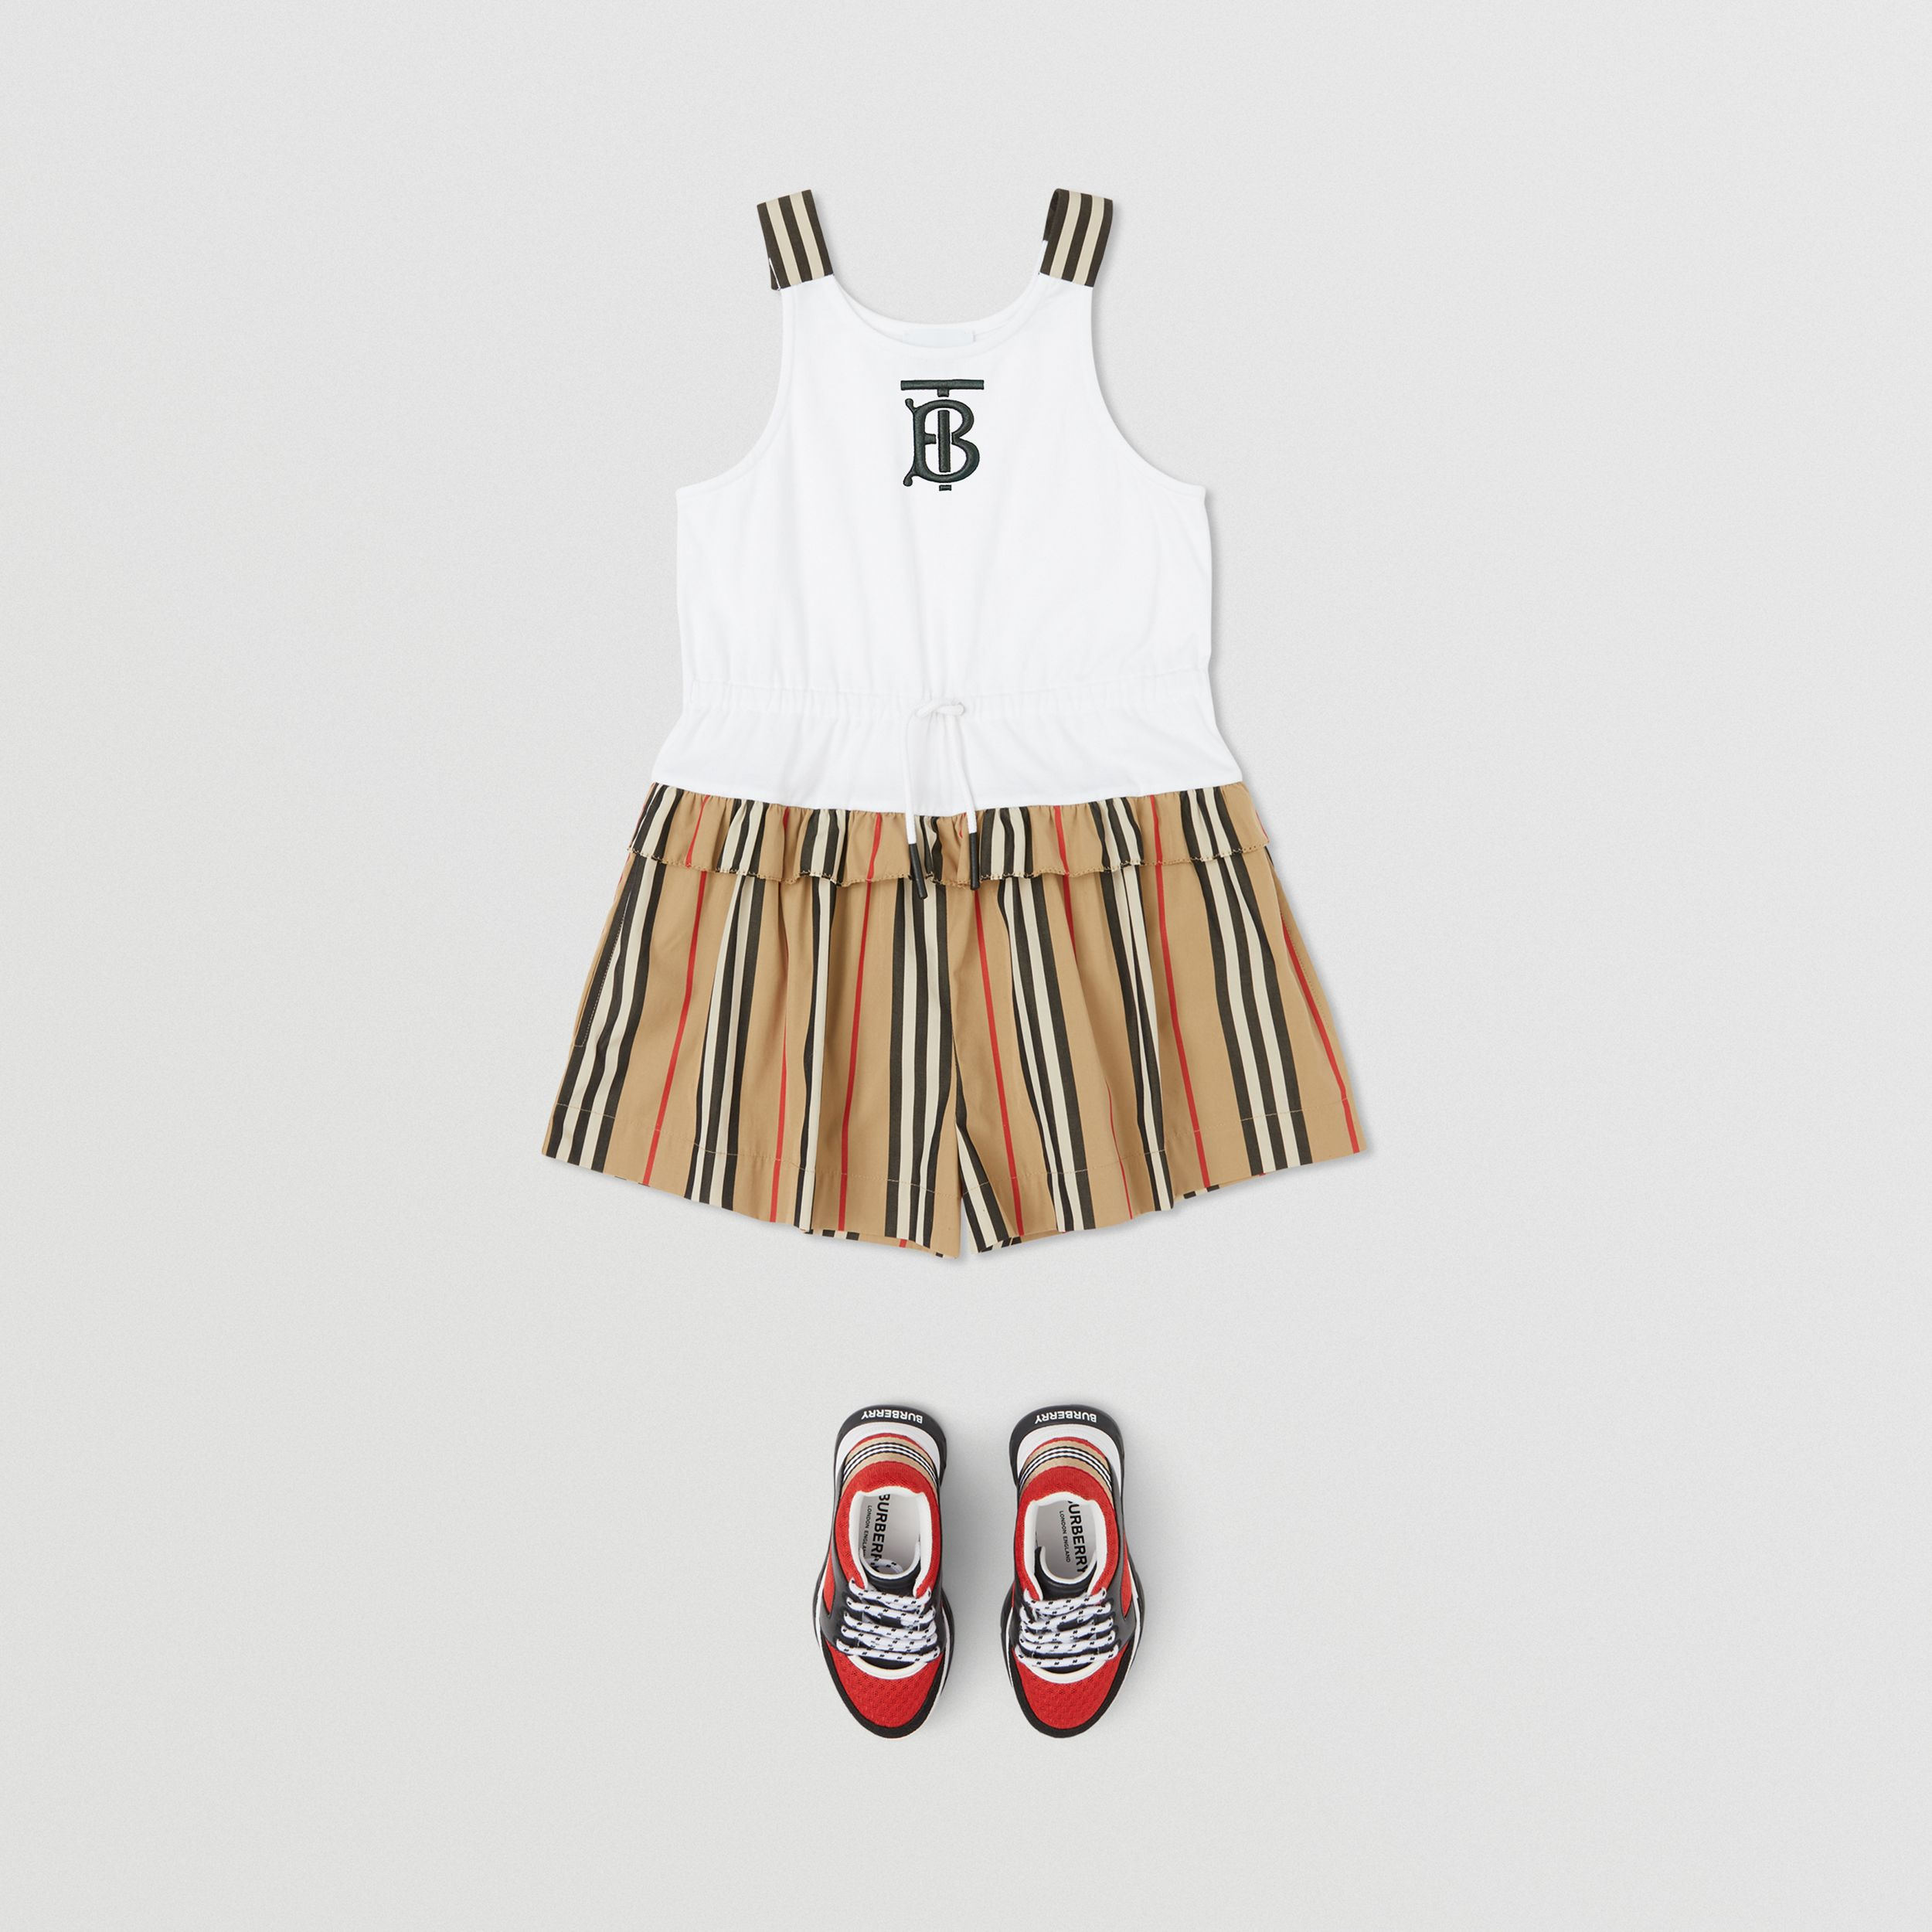 Monogram Motif Icon Stripe Detail Cotton Playsuit in Archive Beige | Burberry United Kingdom - 3